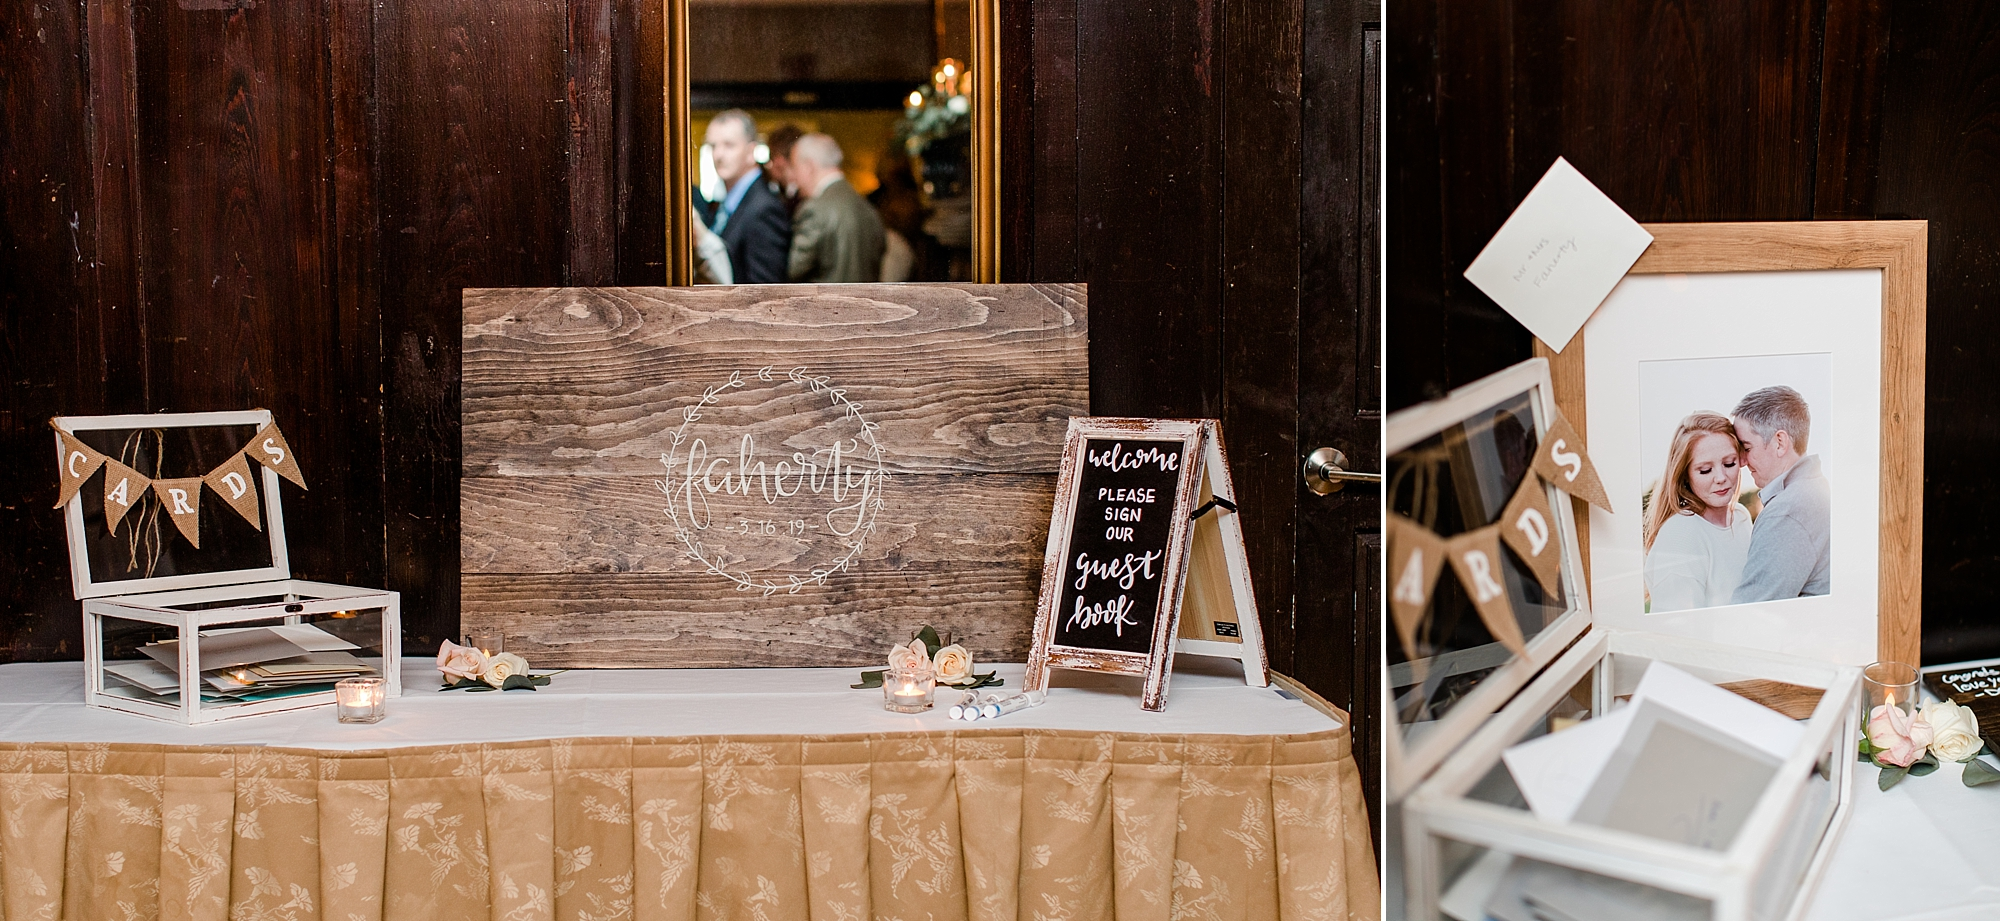 The hand lettering scattered throughout the wedding decor was our favorite personalized touch.   ps. We couldn't help but sneak a special gift to our couple before we left for the night.